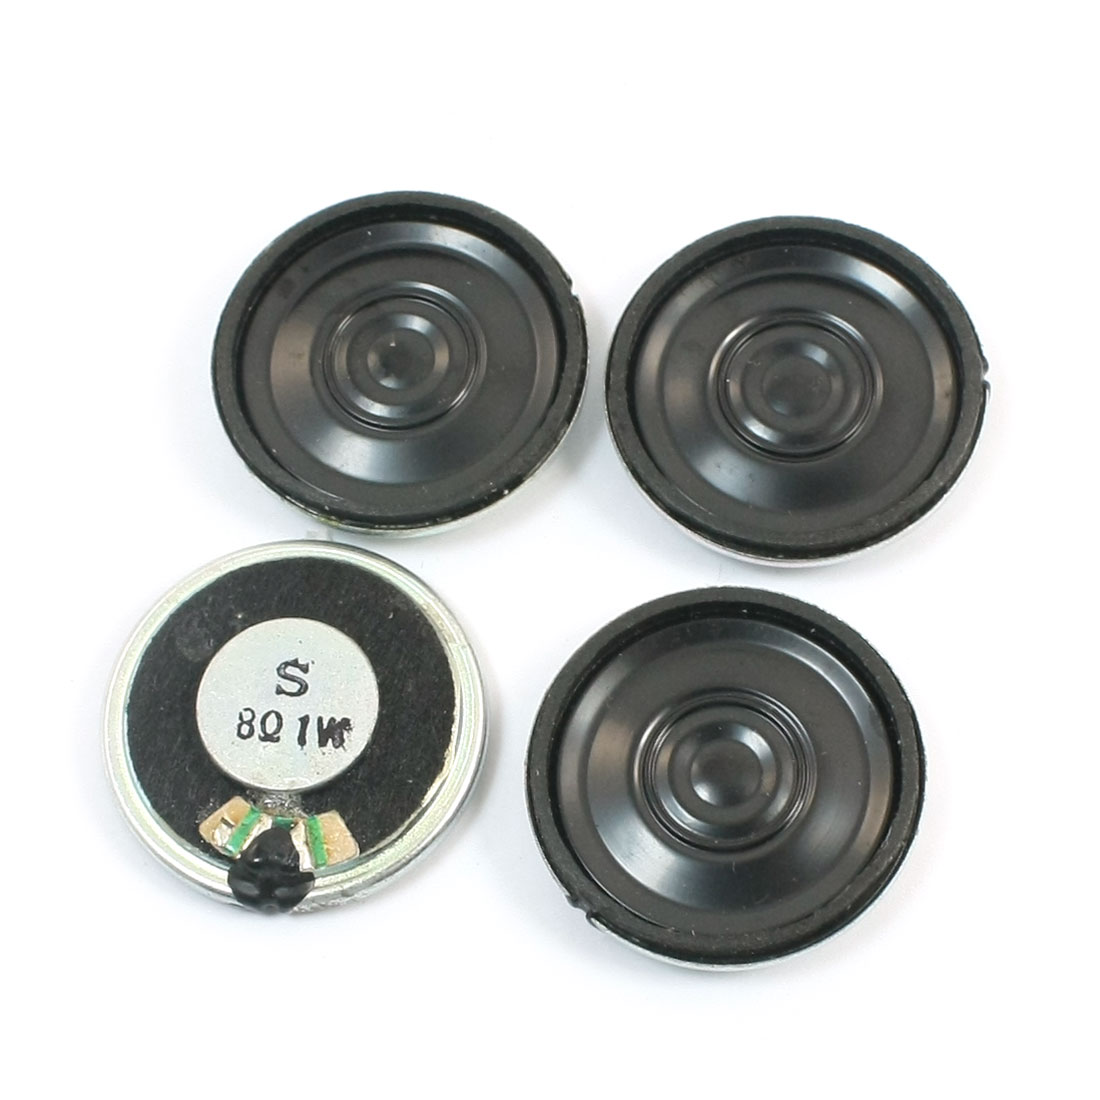 4Pcs 1Watt 8 Ohm 28mm Dia Metal Shell Internal Magnet Mini DVD EVD Speaker Loudspeaker Amplifier Replacement